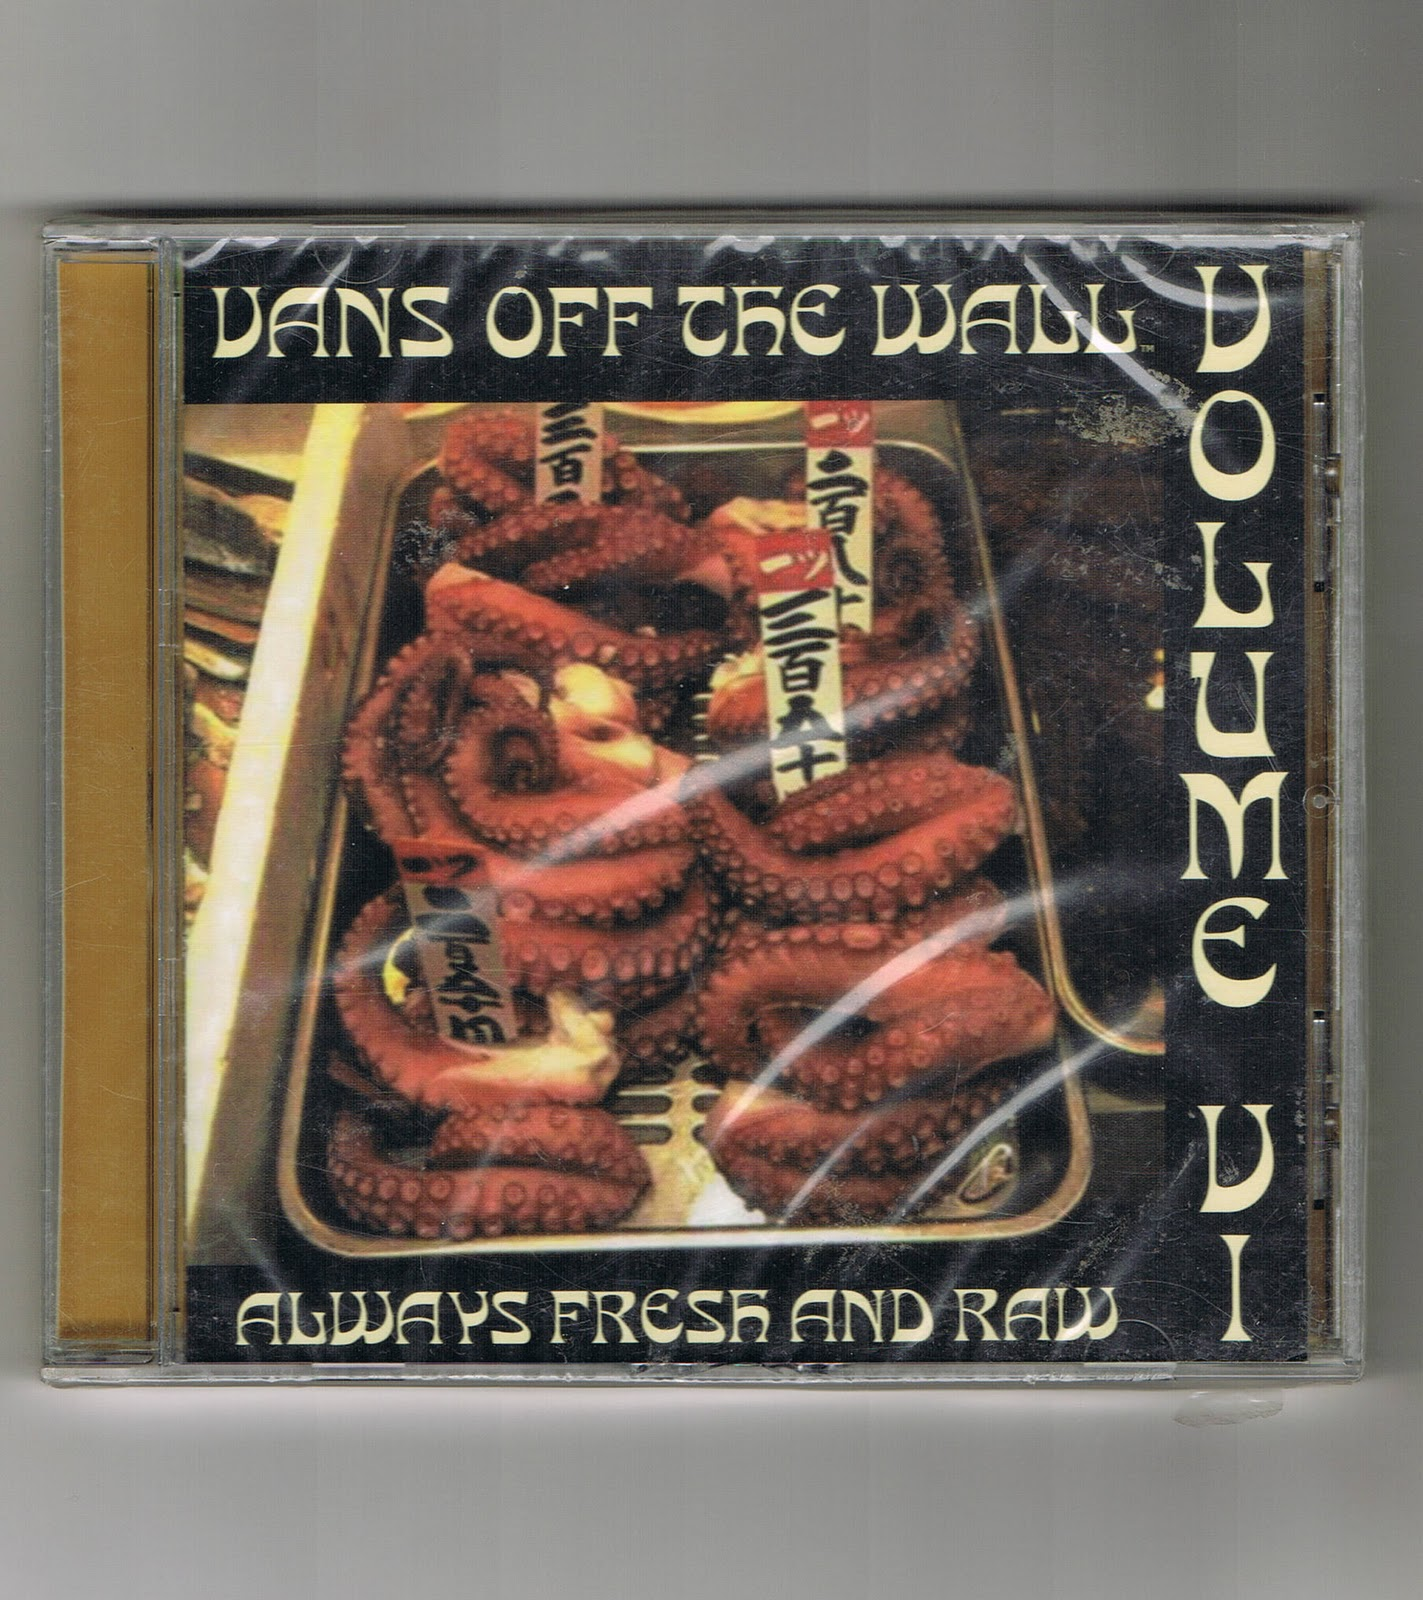 vans off the wall cd